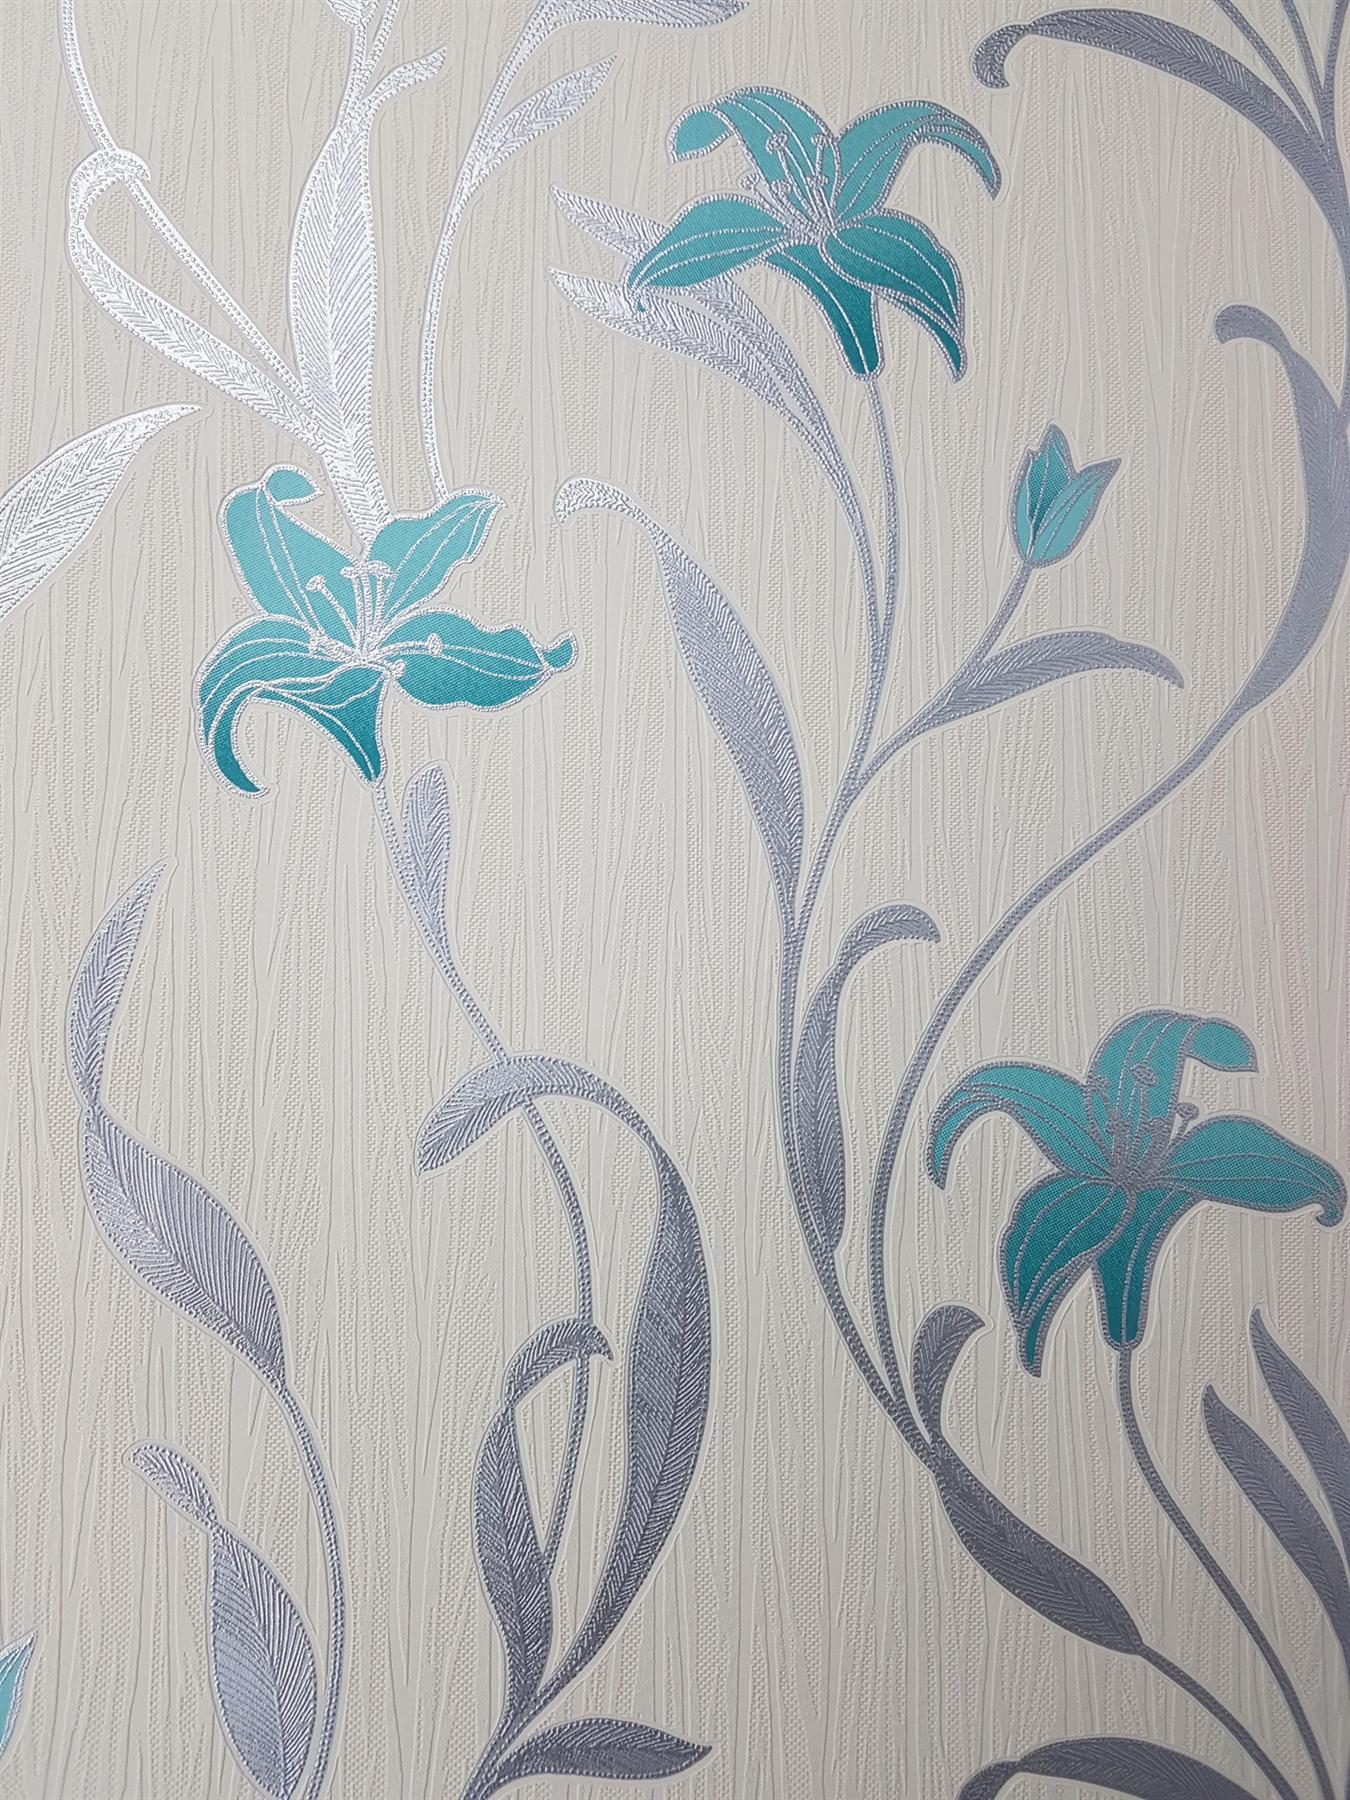 P S Teal Lily Floral Wallpaper Leaf Cream Silver Metallic Textured